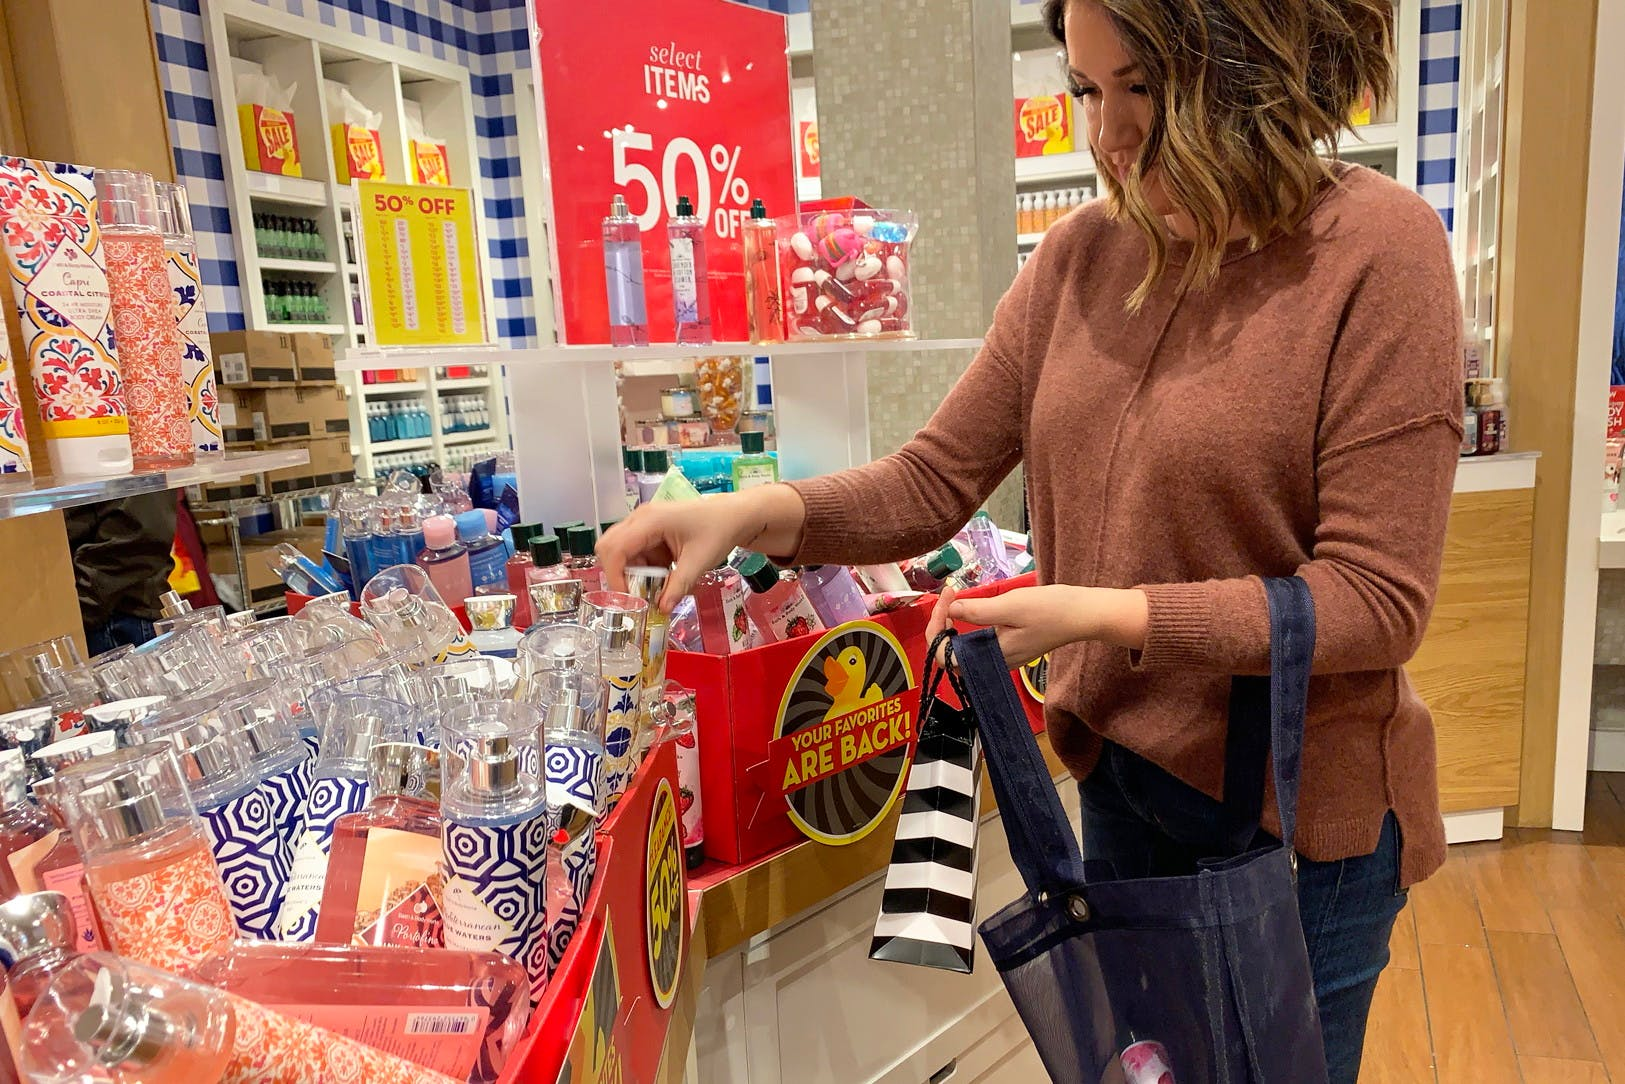 Bath And Body Works Days Of Christmas 2020 23 Bath & Body Works Sale Hacks That'll Blow Your Mind   The Krazy